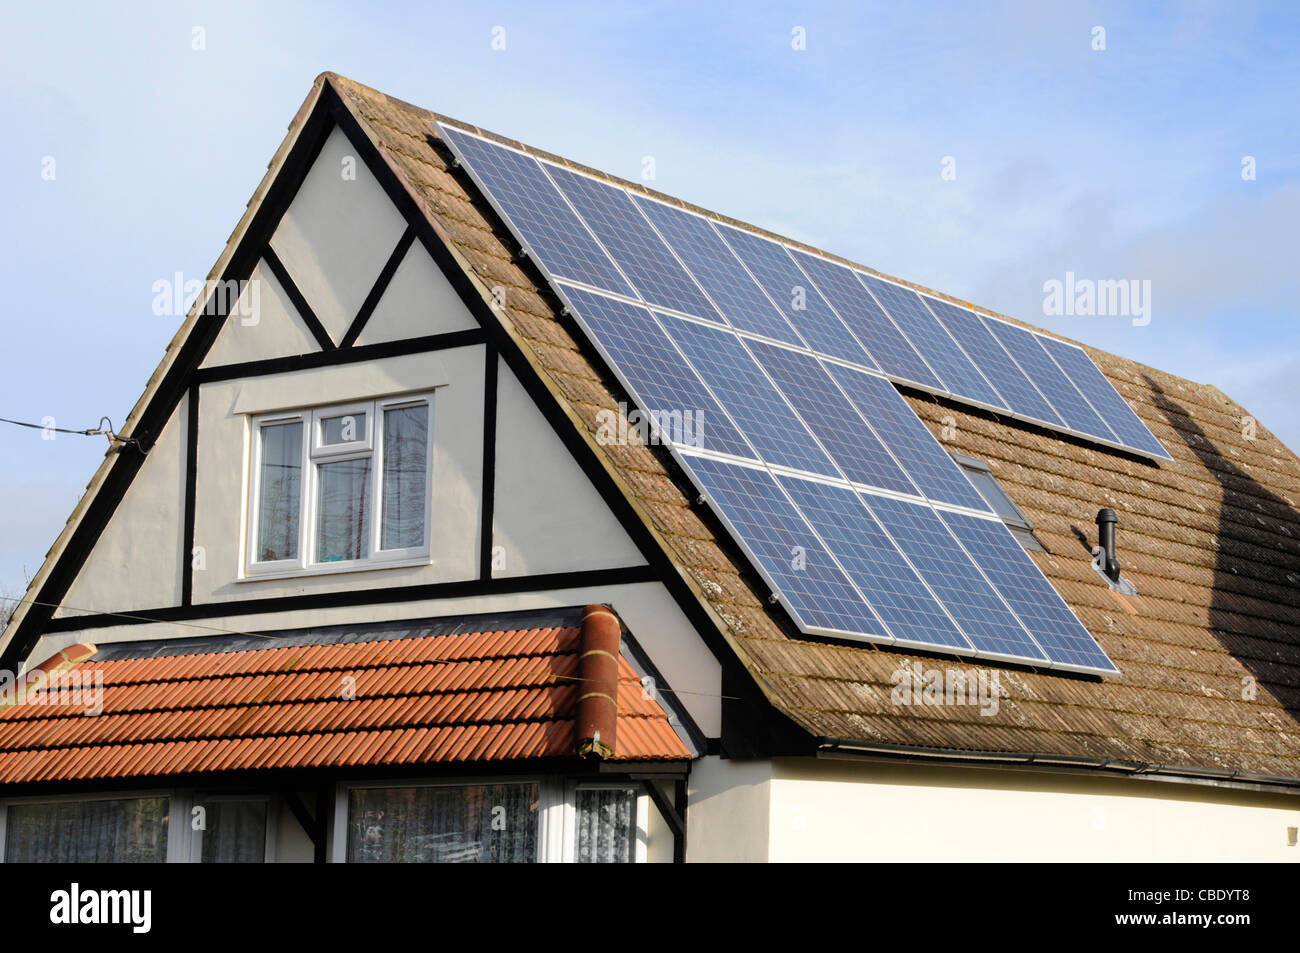 Solar Panels installed on roof of detached house alongside an existing rooflight - Stock Image